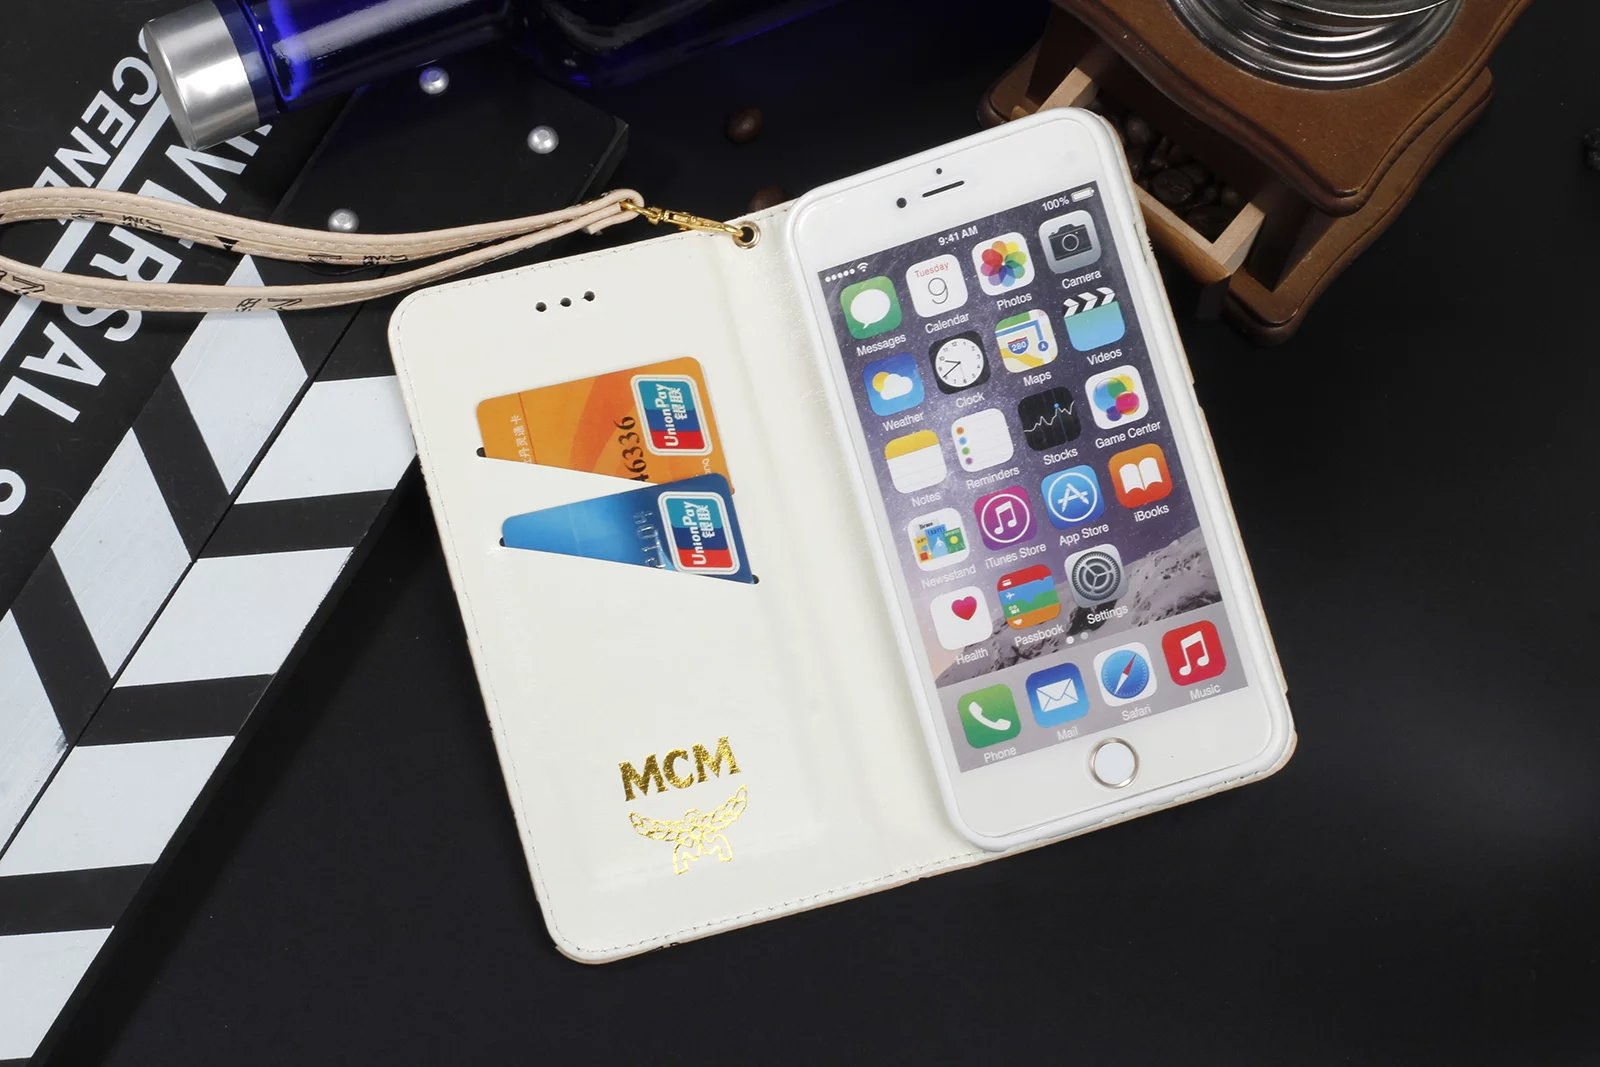 iphone covers for 7 Plus iphone cases for 7 Plus fashion iphone7 Plus case designer iphone 7 Plus case  buy case for iphone 7 Plus iphone 7 Plus new covers iphone 7 Plus c cover best phone case for iphone 7 Plus